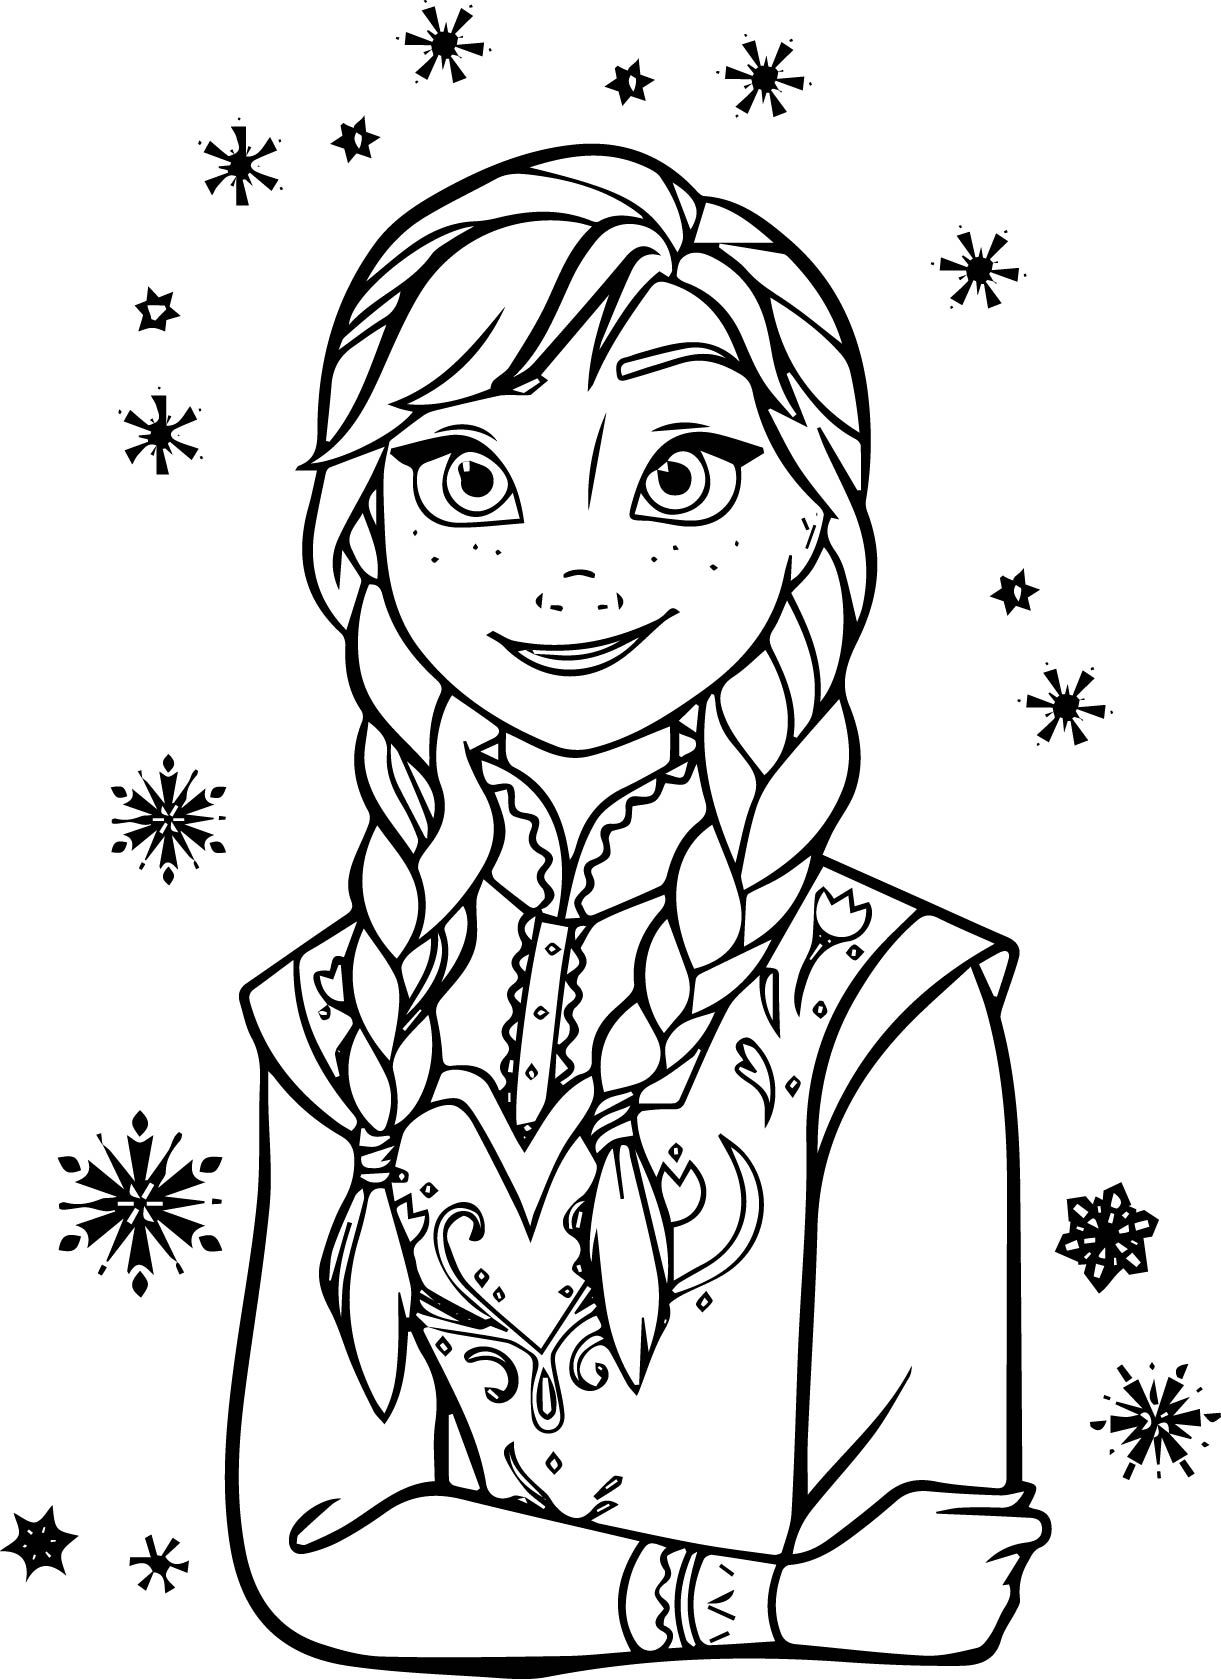 frozen cartoon characters coloring pages - photo#36